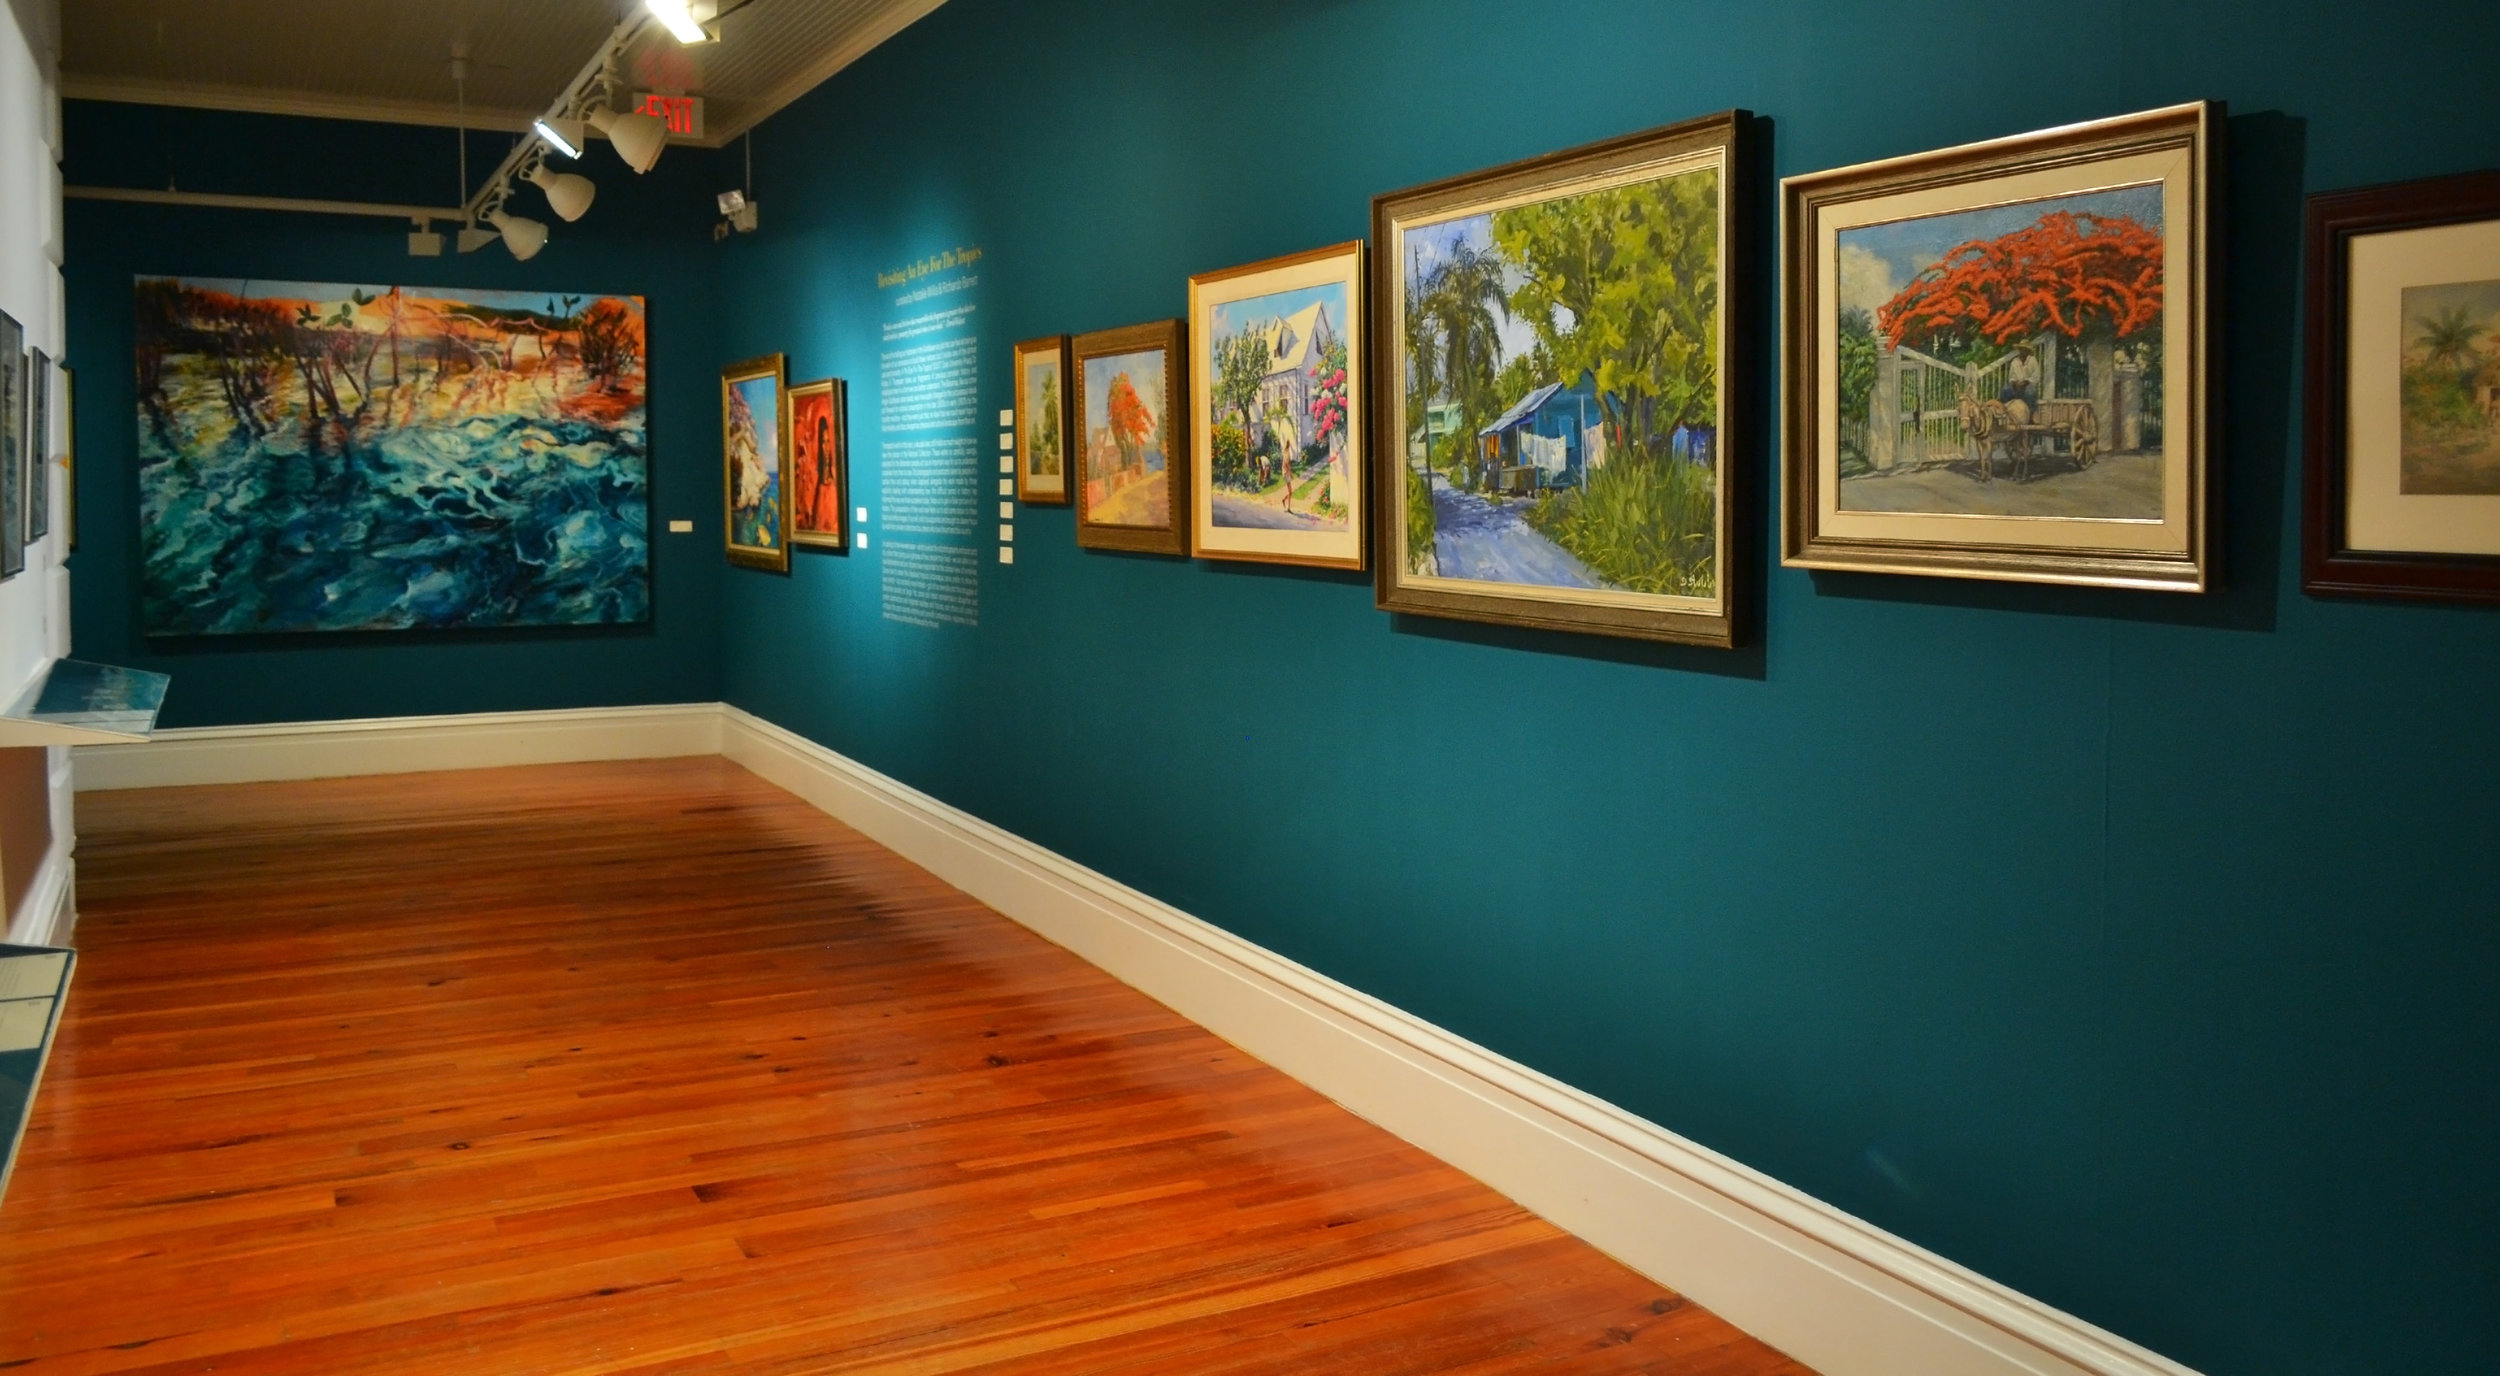 """1. Installation shot of Dorman Stubbs' """"Bain Town"""" (1984) as seen in the current Permanent Exhibition, """"Revisiting An Eye For The Tropics"""" at The National Art Gallery of The Bahamas"""